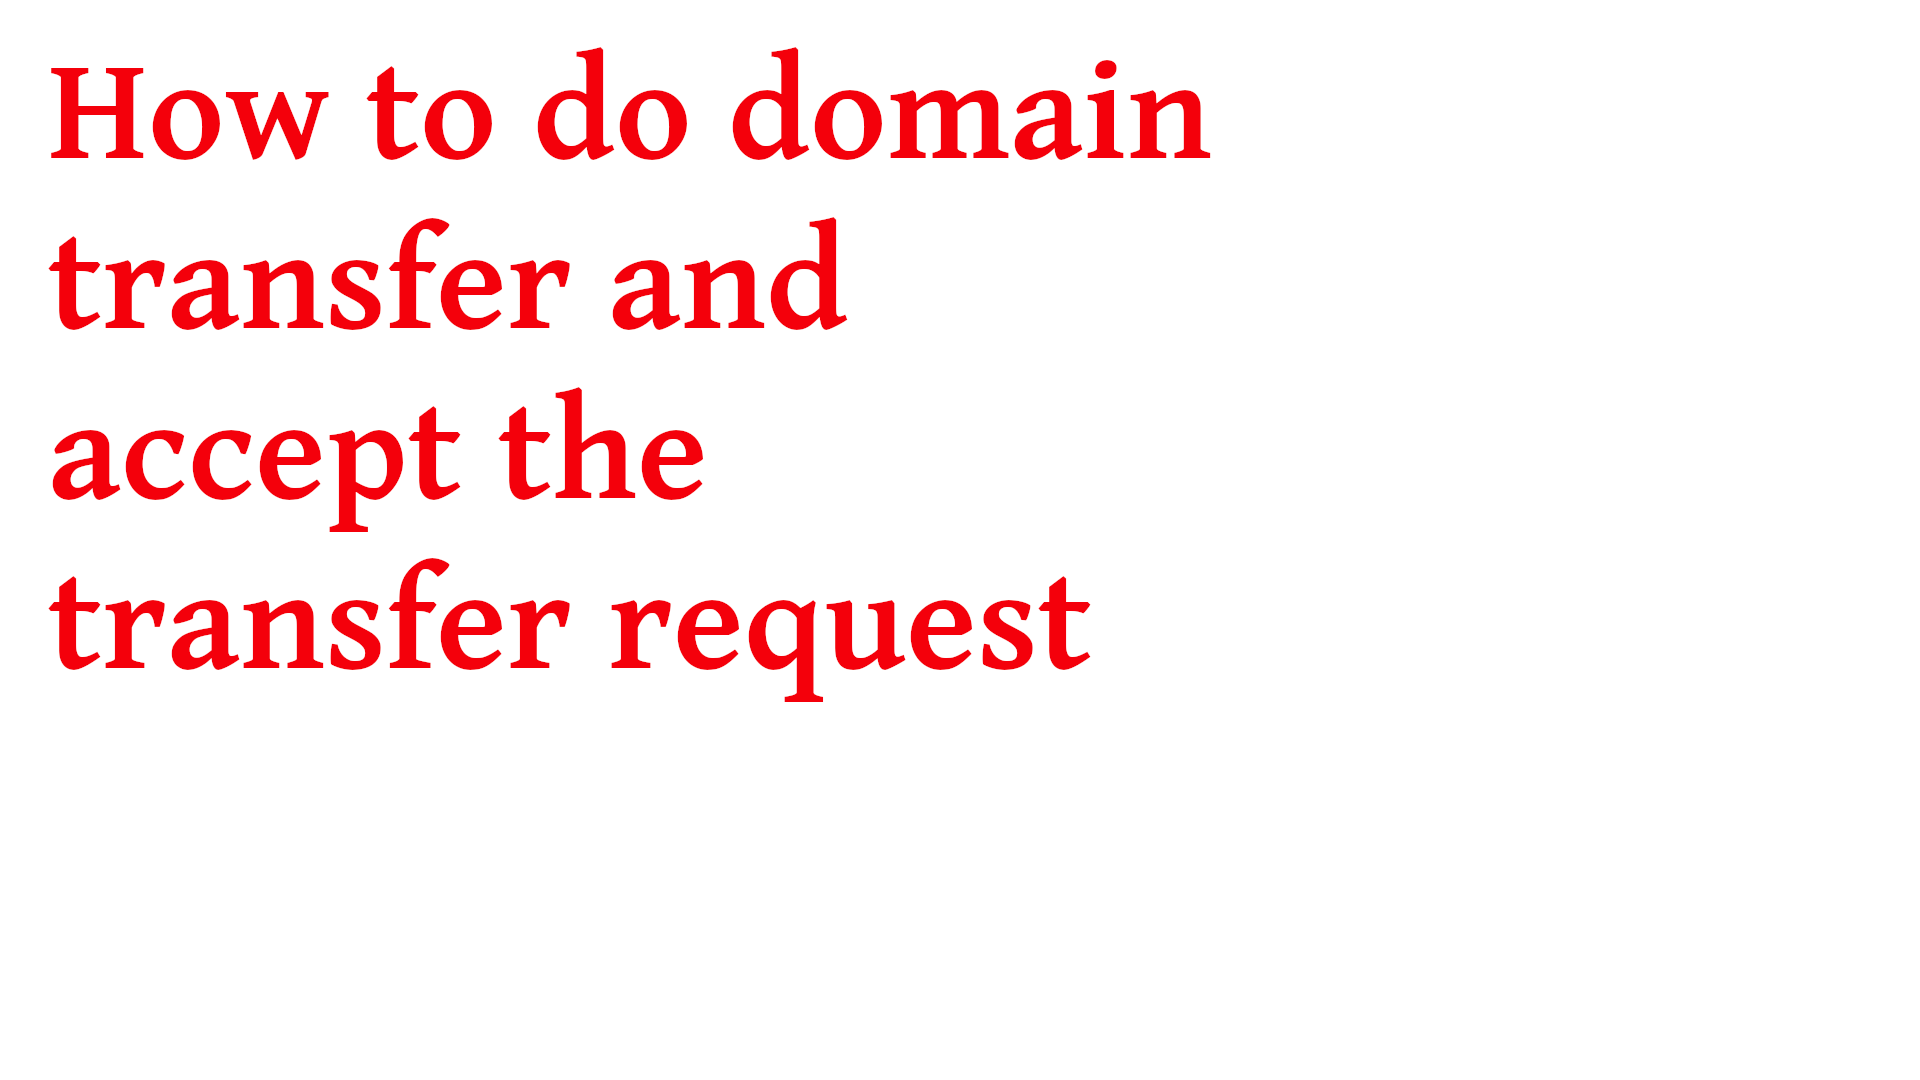 How to do domain transfer step by step 2020